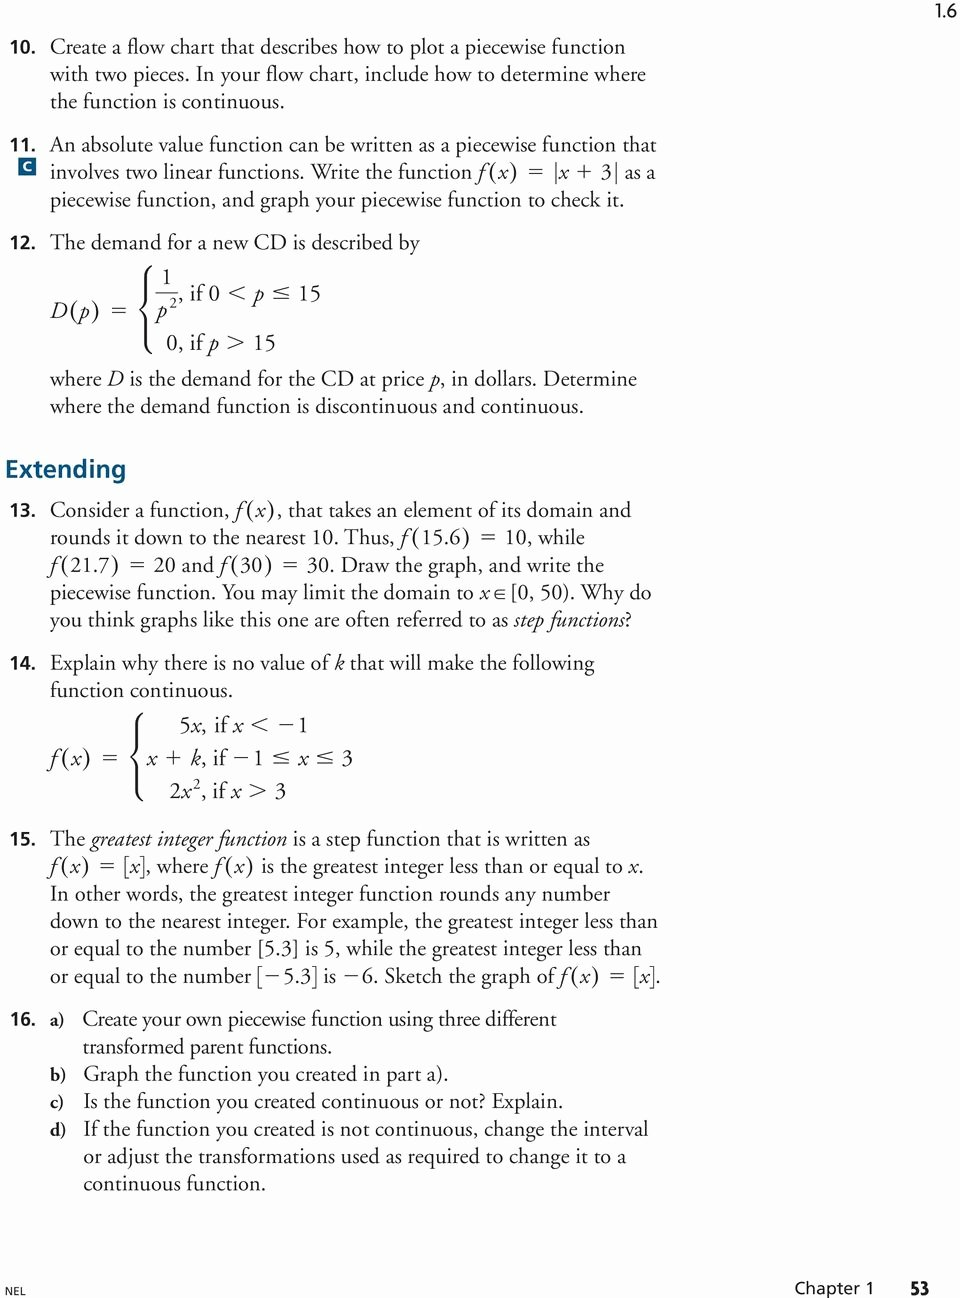 Piecewise Functions Word Problems Worksheet Fresh 1 6 Piecewise Functions Learn About the Math Representing